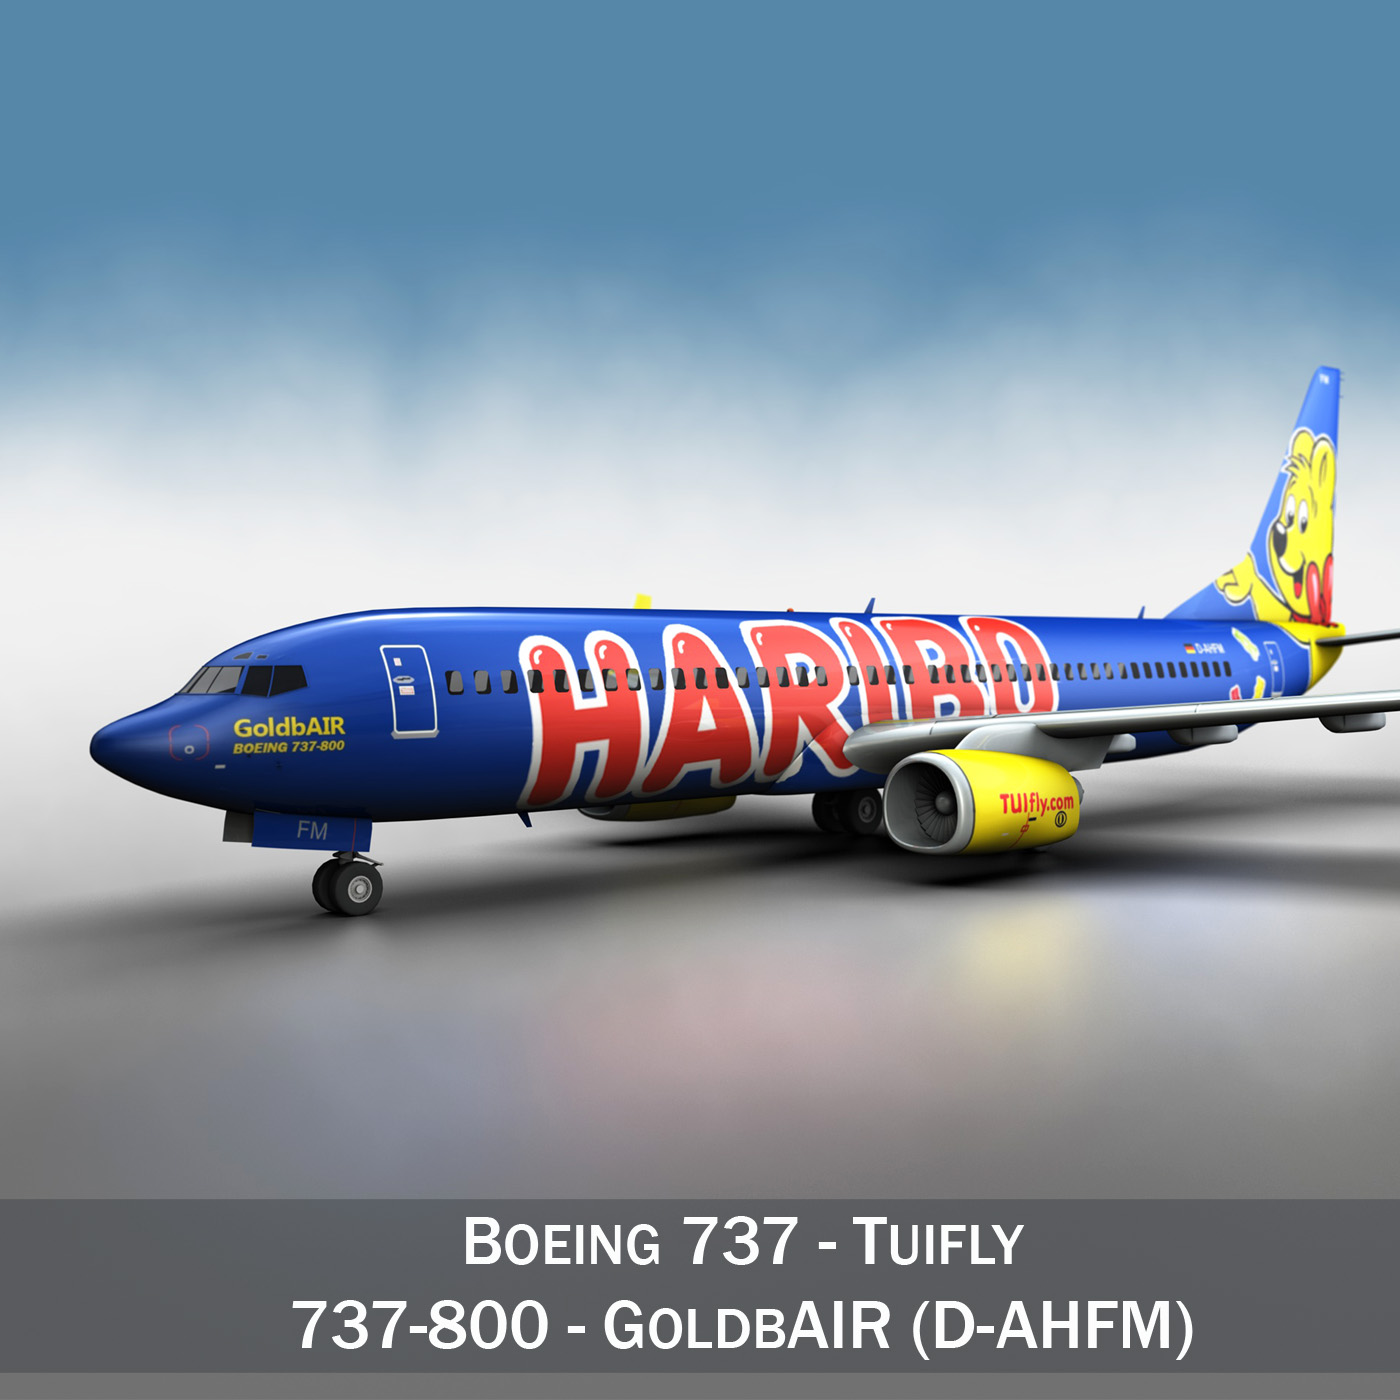 boeing 737-800 goldbair 3d model 3ds fbx c4d lwo obj 293492